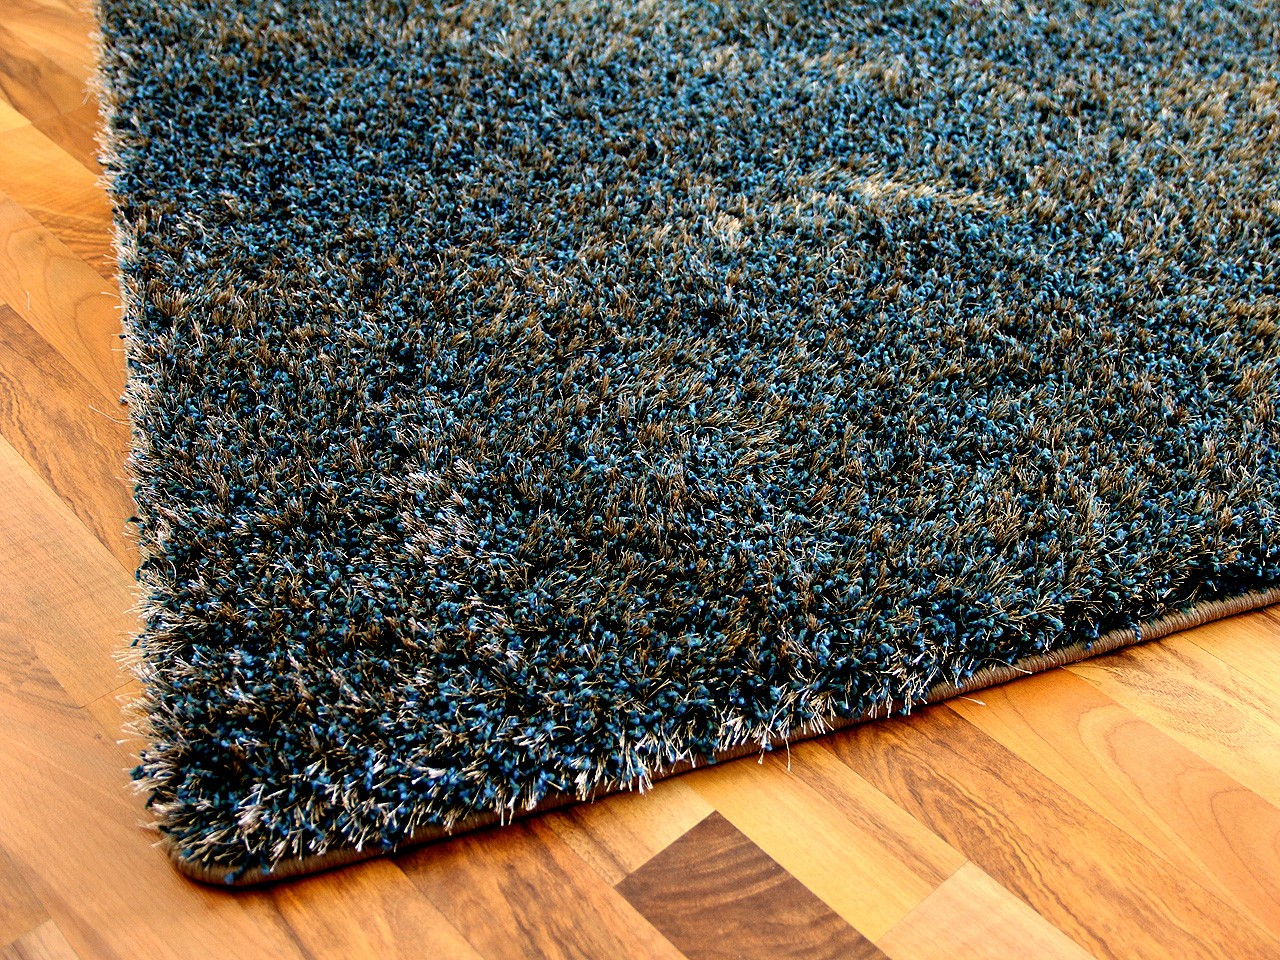 Teppich 24.de Hochflor Shaggy Teppich Luxus Feeling Mix Blau Gold In 24